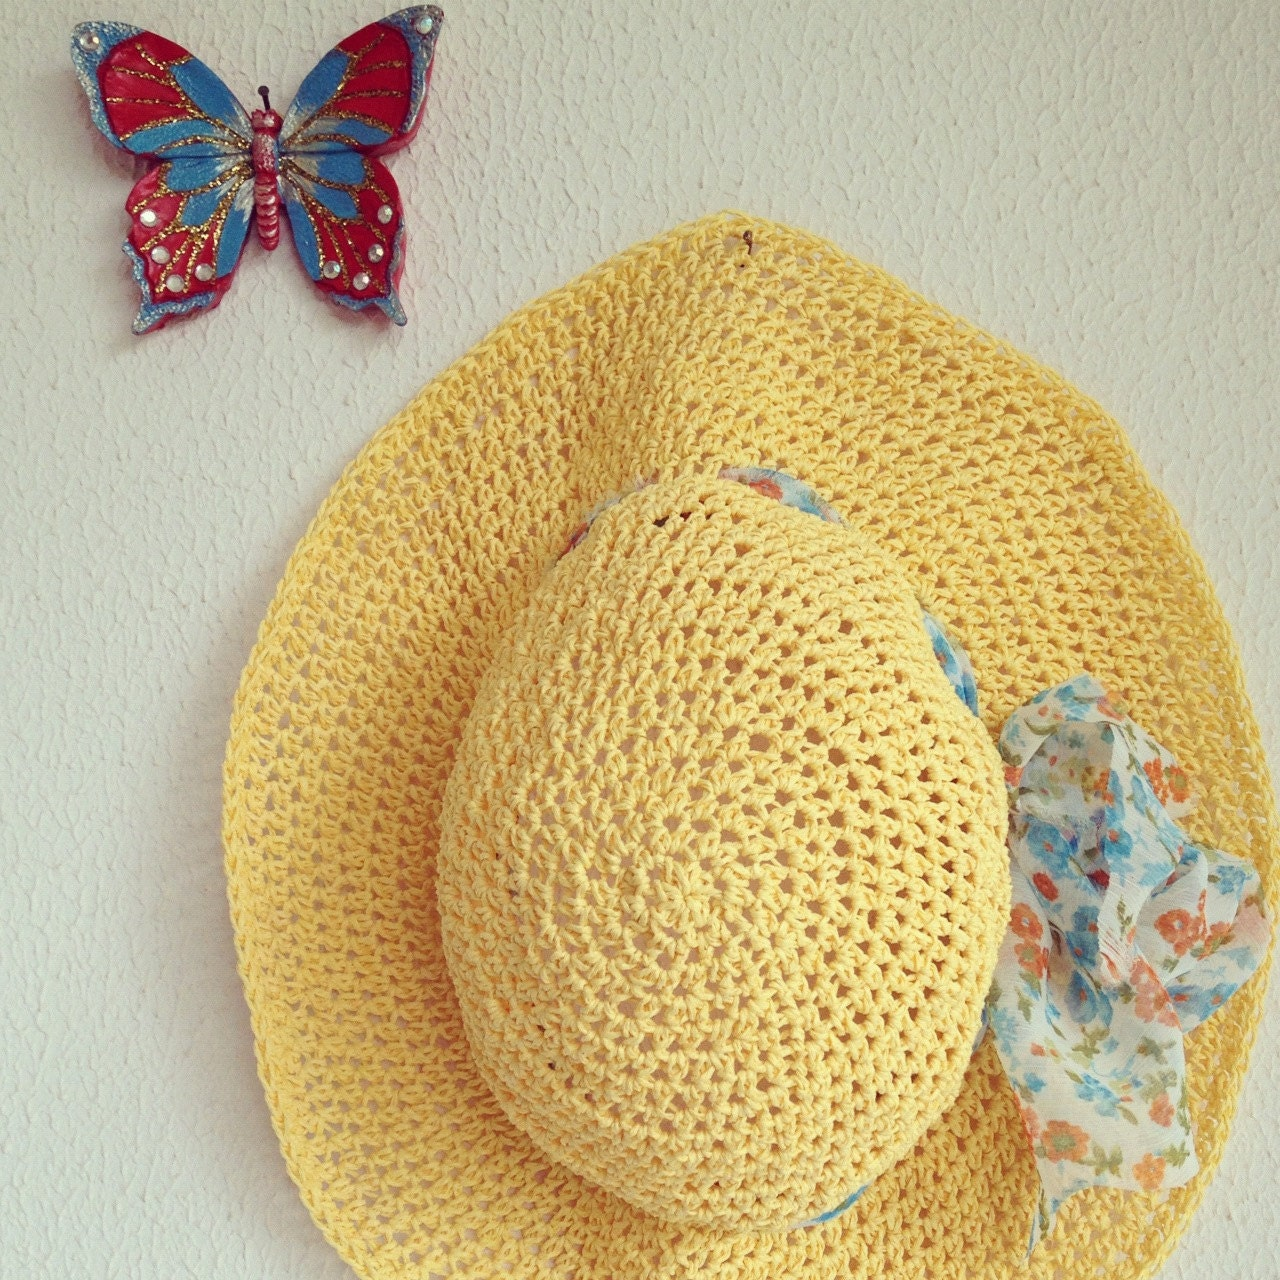 Crocheted natural raffia Tangerine Yellow Solar Power Summer Sun Hat With Organza Flower Fabric - cookieletta